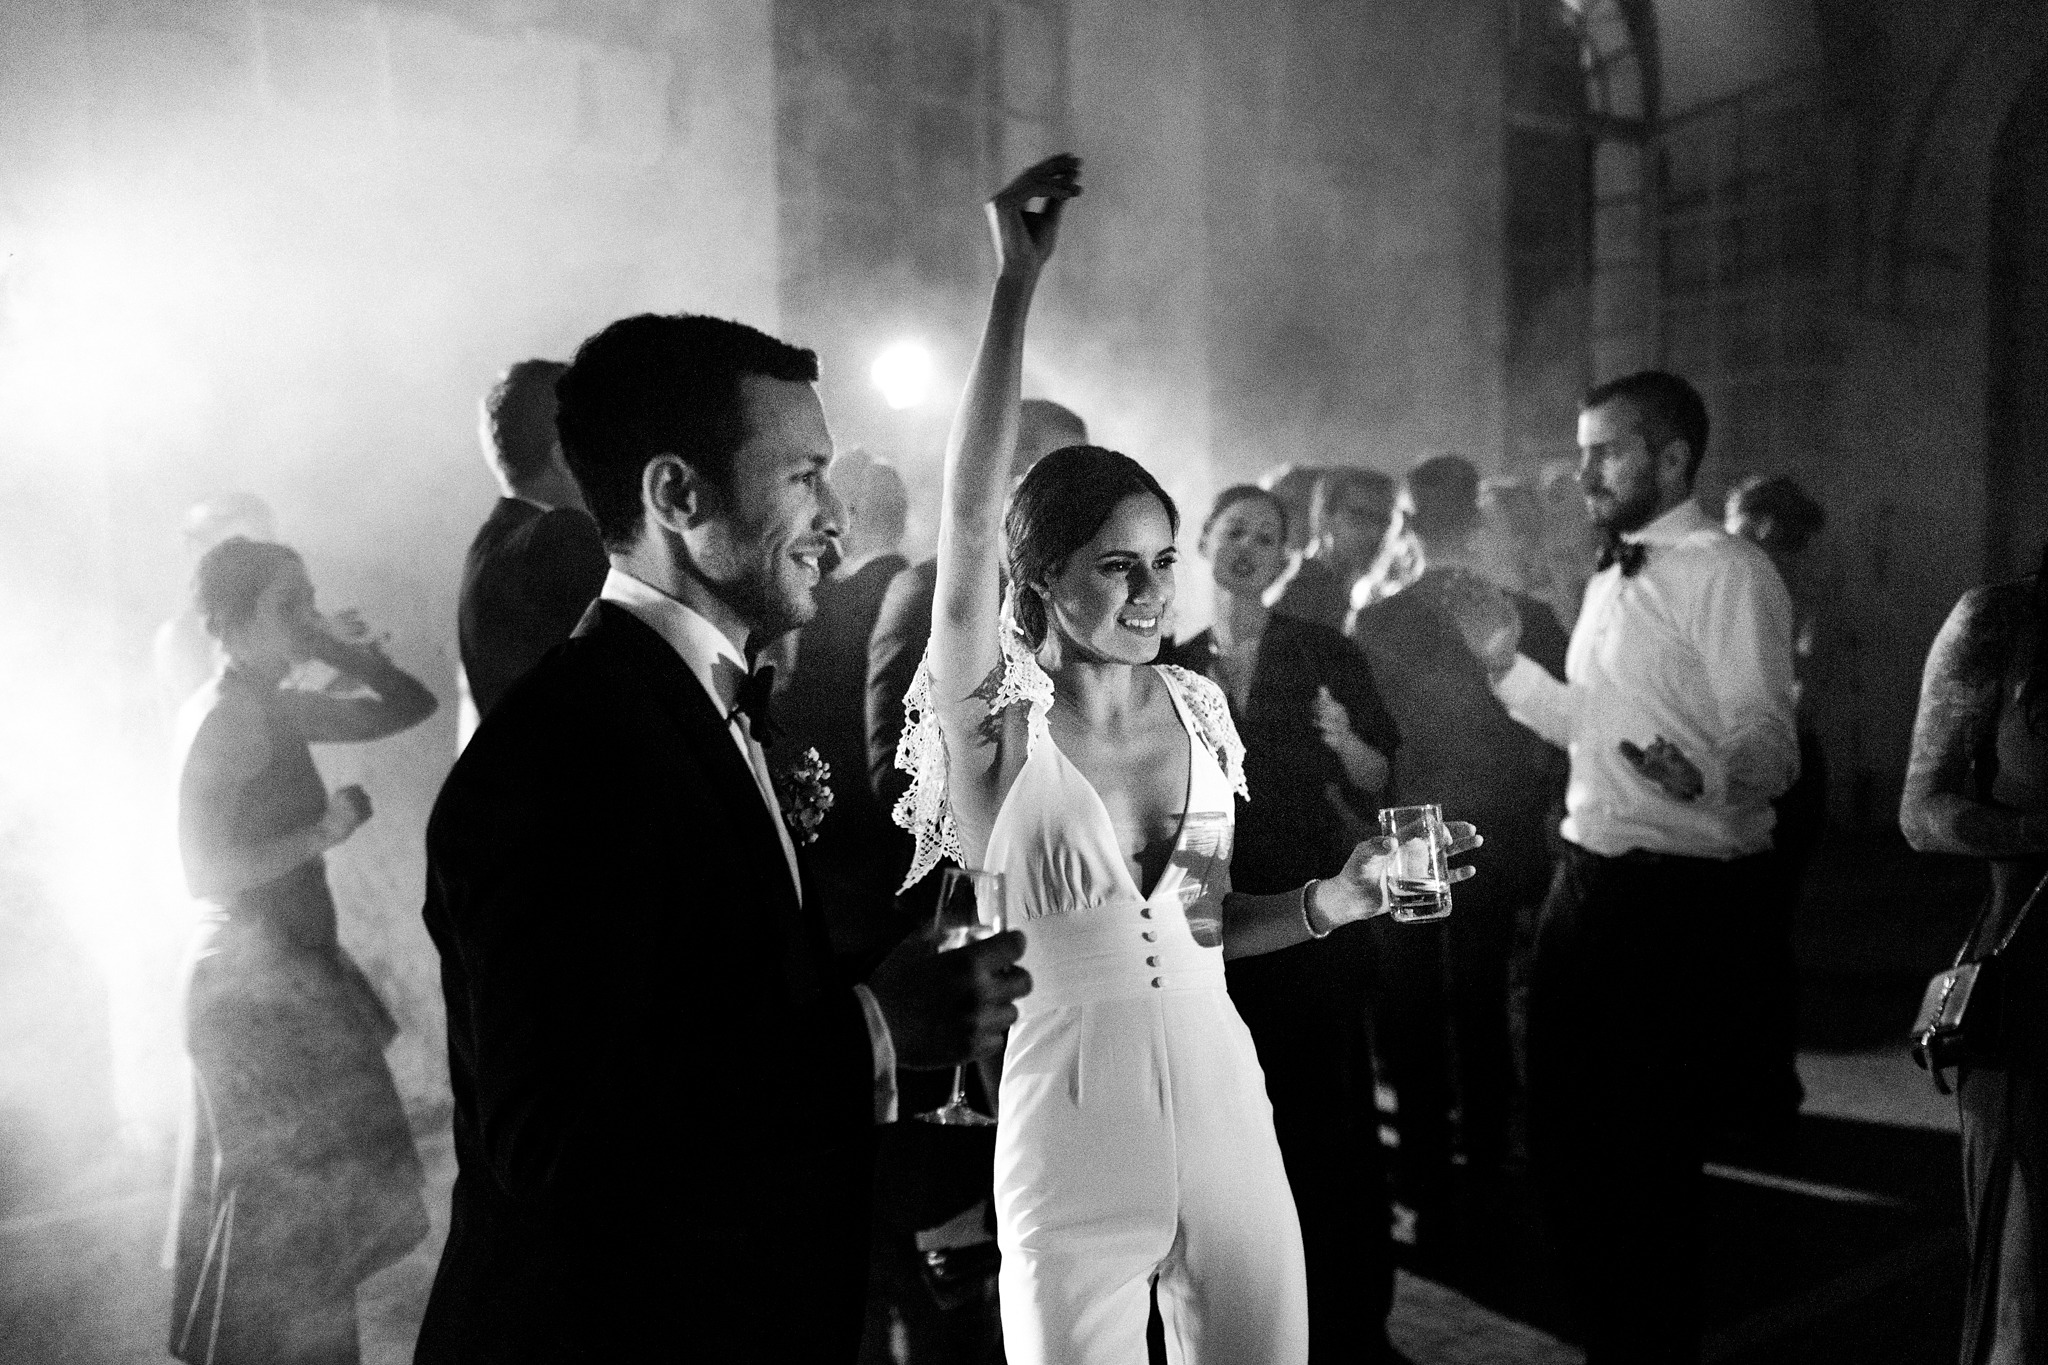 chateau-wedding-france-chanel-eric-as-seen-on-vogue-with-sarah-falugo-photographer_0148